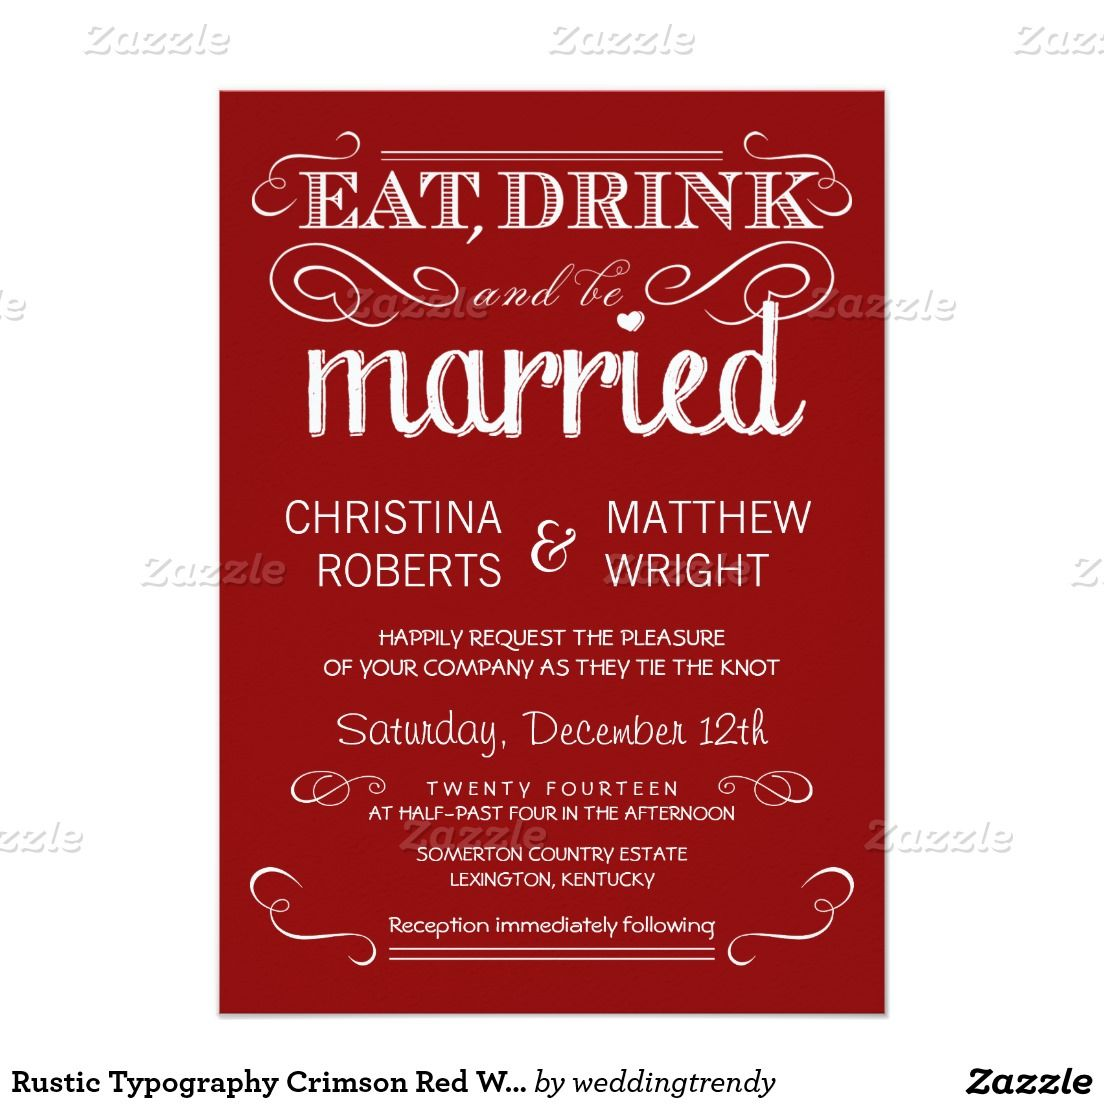 Rustic Typography Crimson Red Wedding Invitations | WEDDING ...